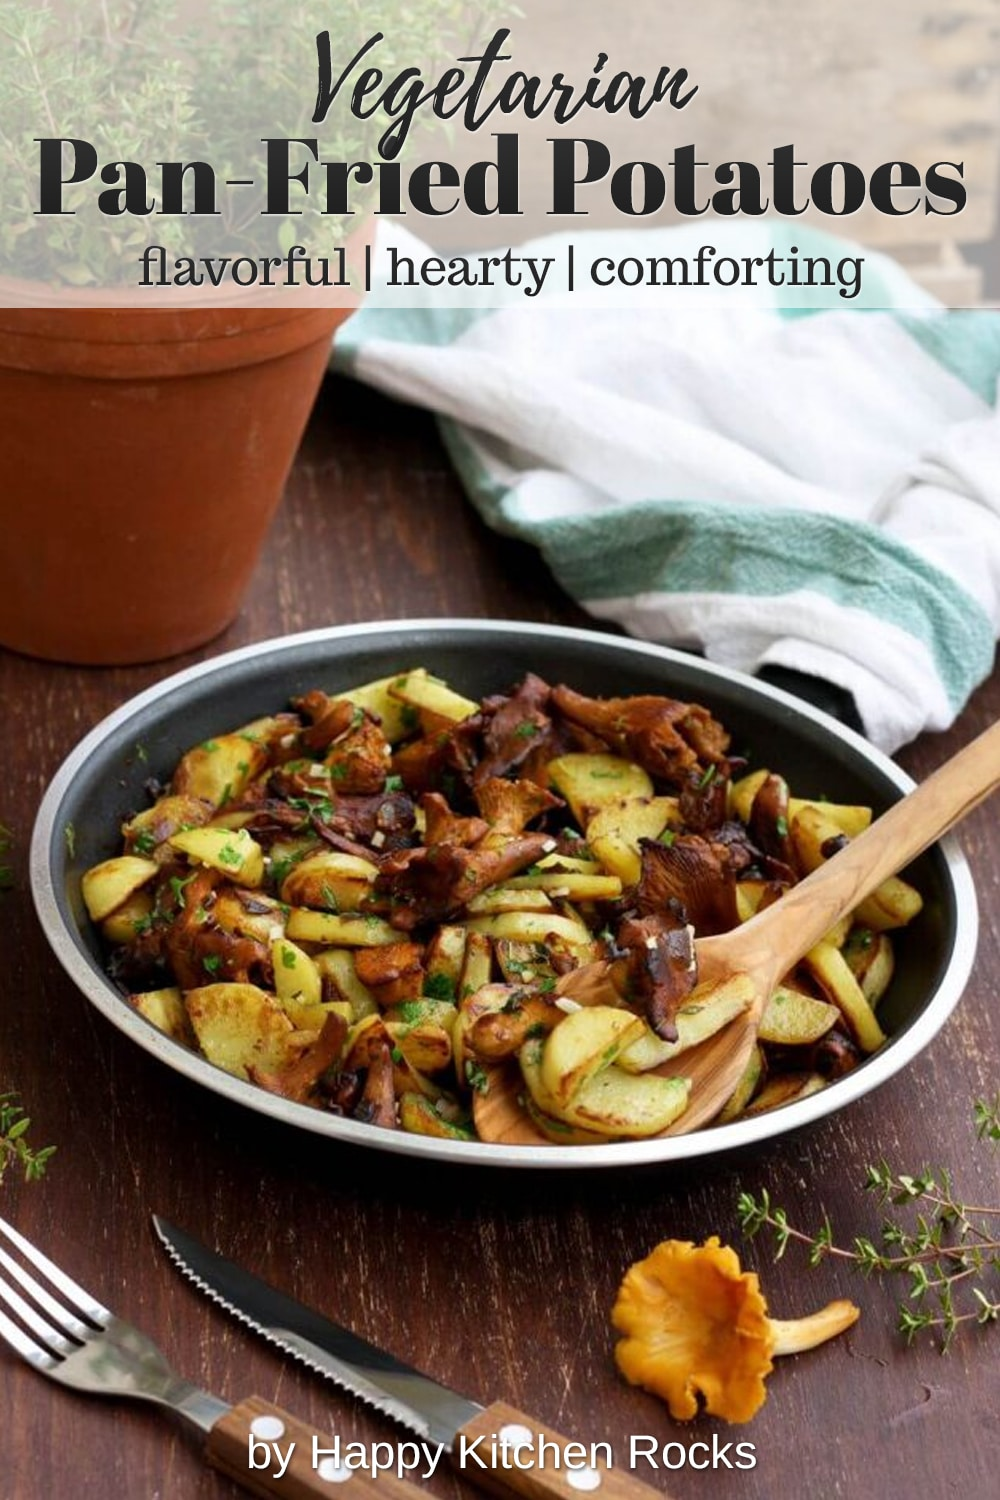 Russian Pan-Fried Potatoes with Wild Mushrooms Collage with Text Overlay